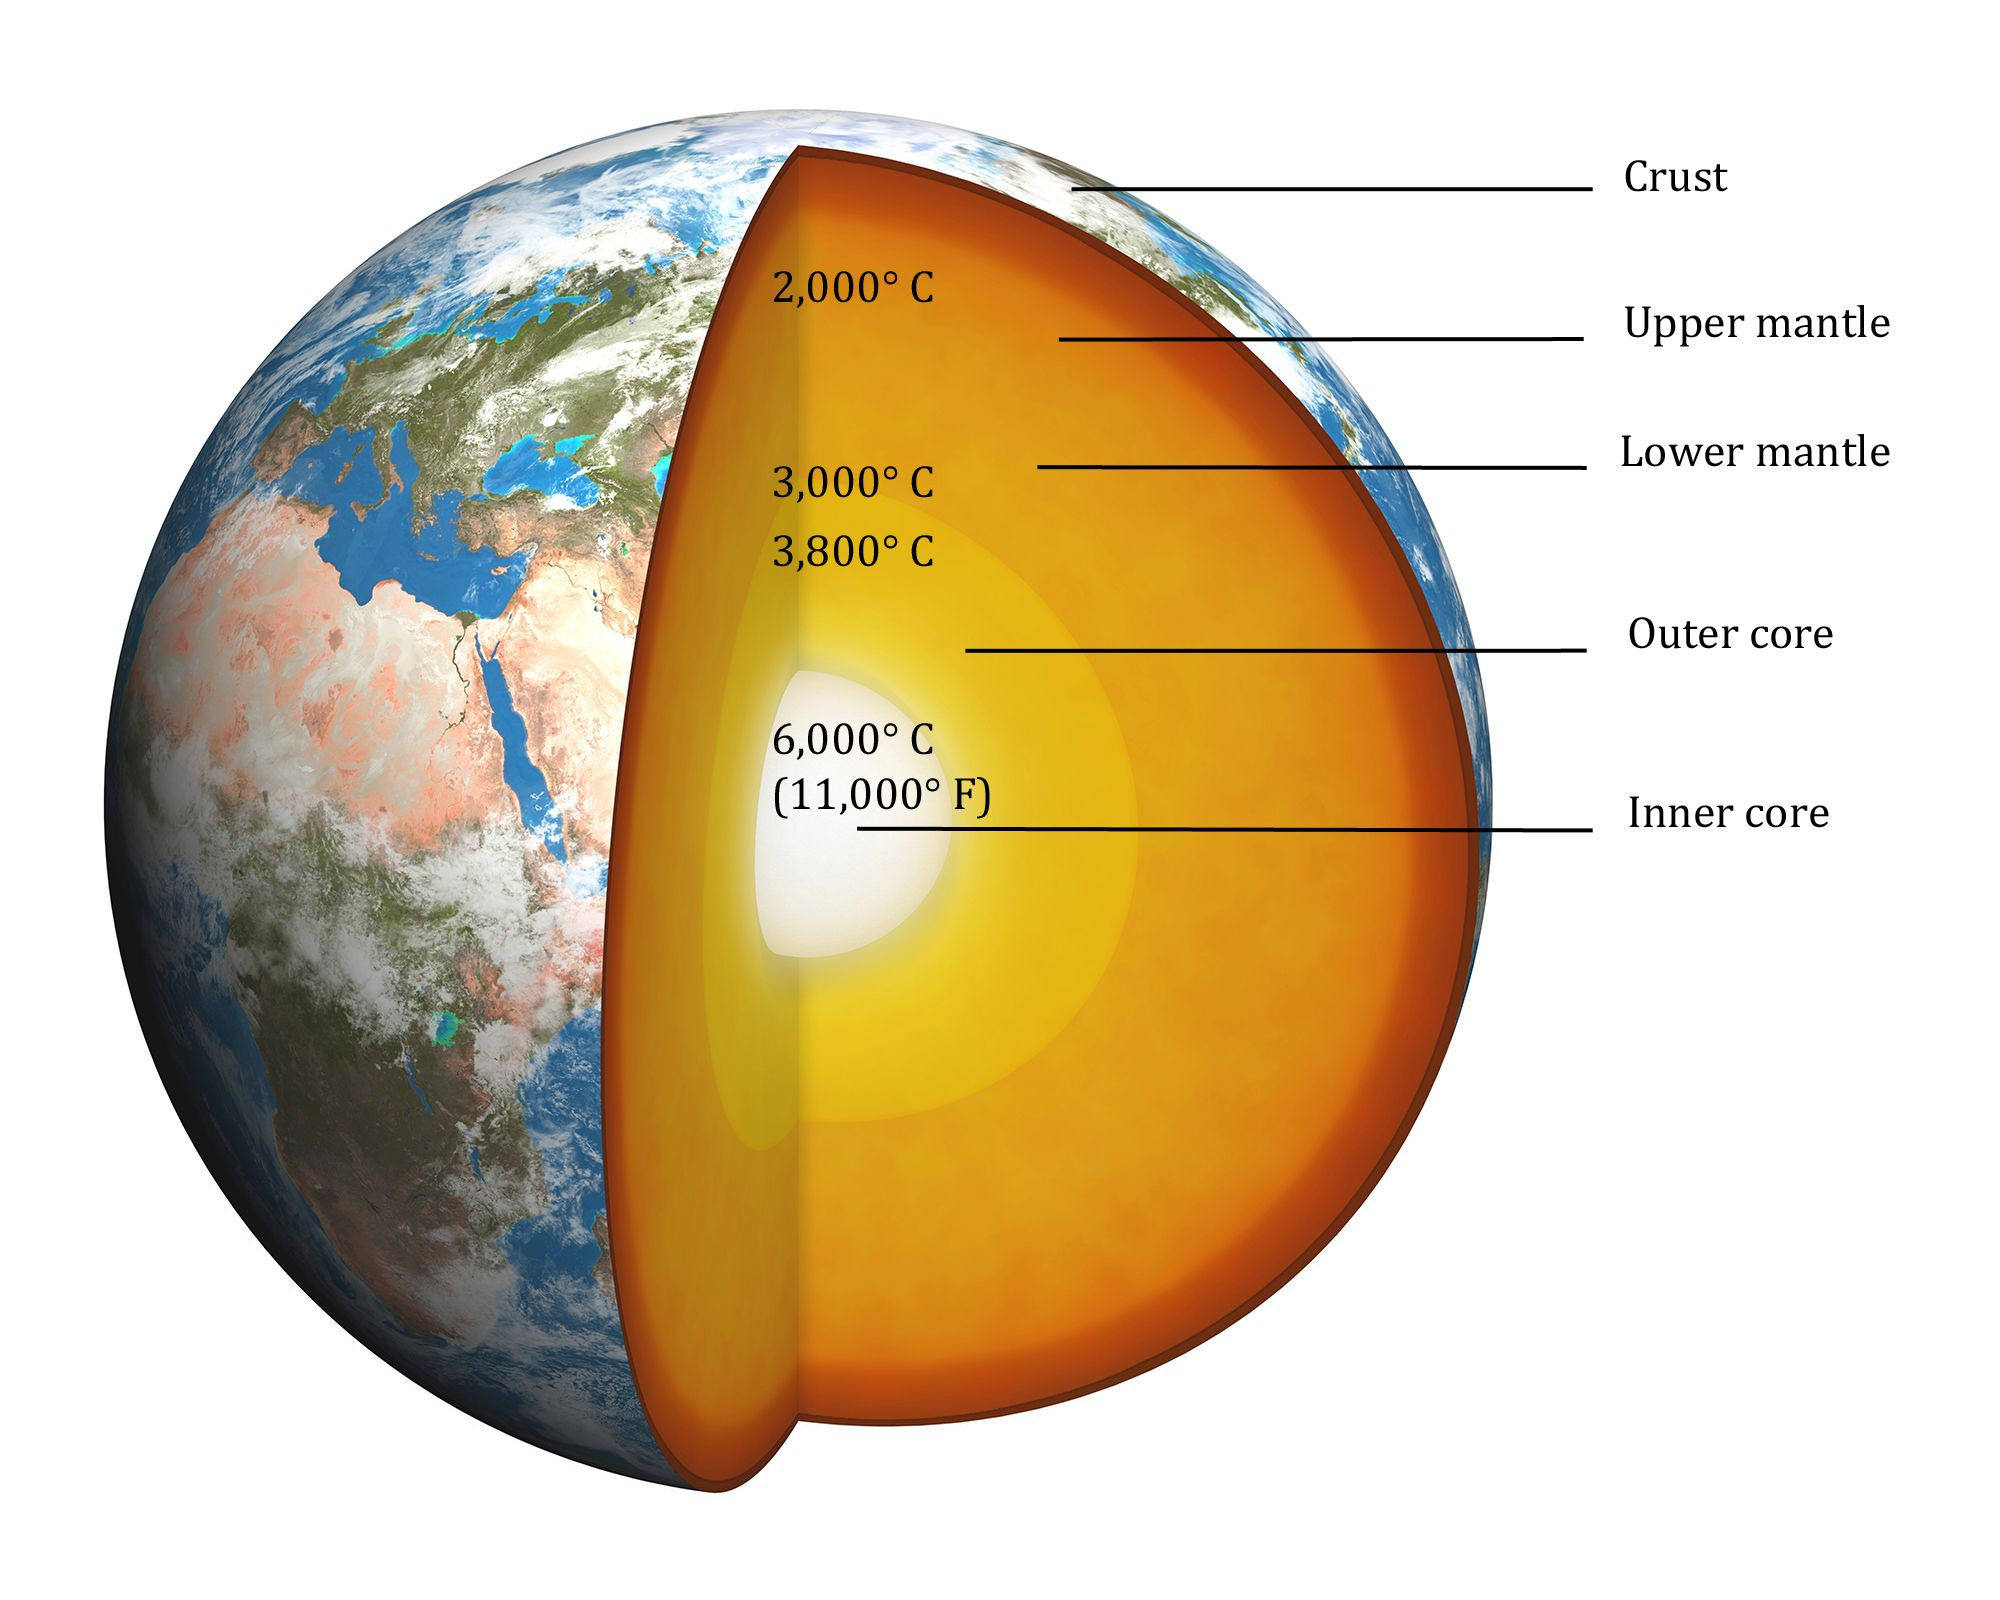 Earth Temps Jpg 2000 1600 Earth Images Earth Inner Core